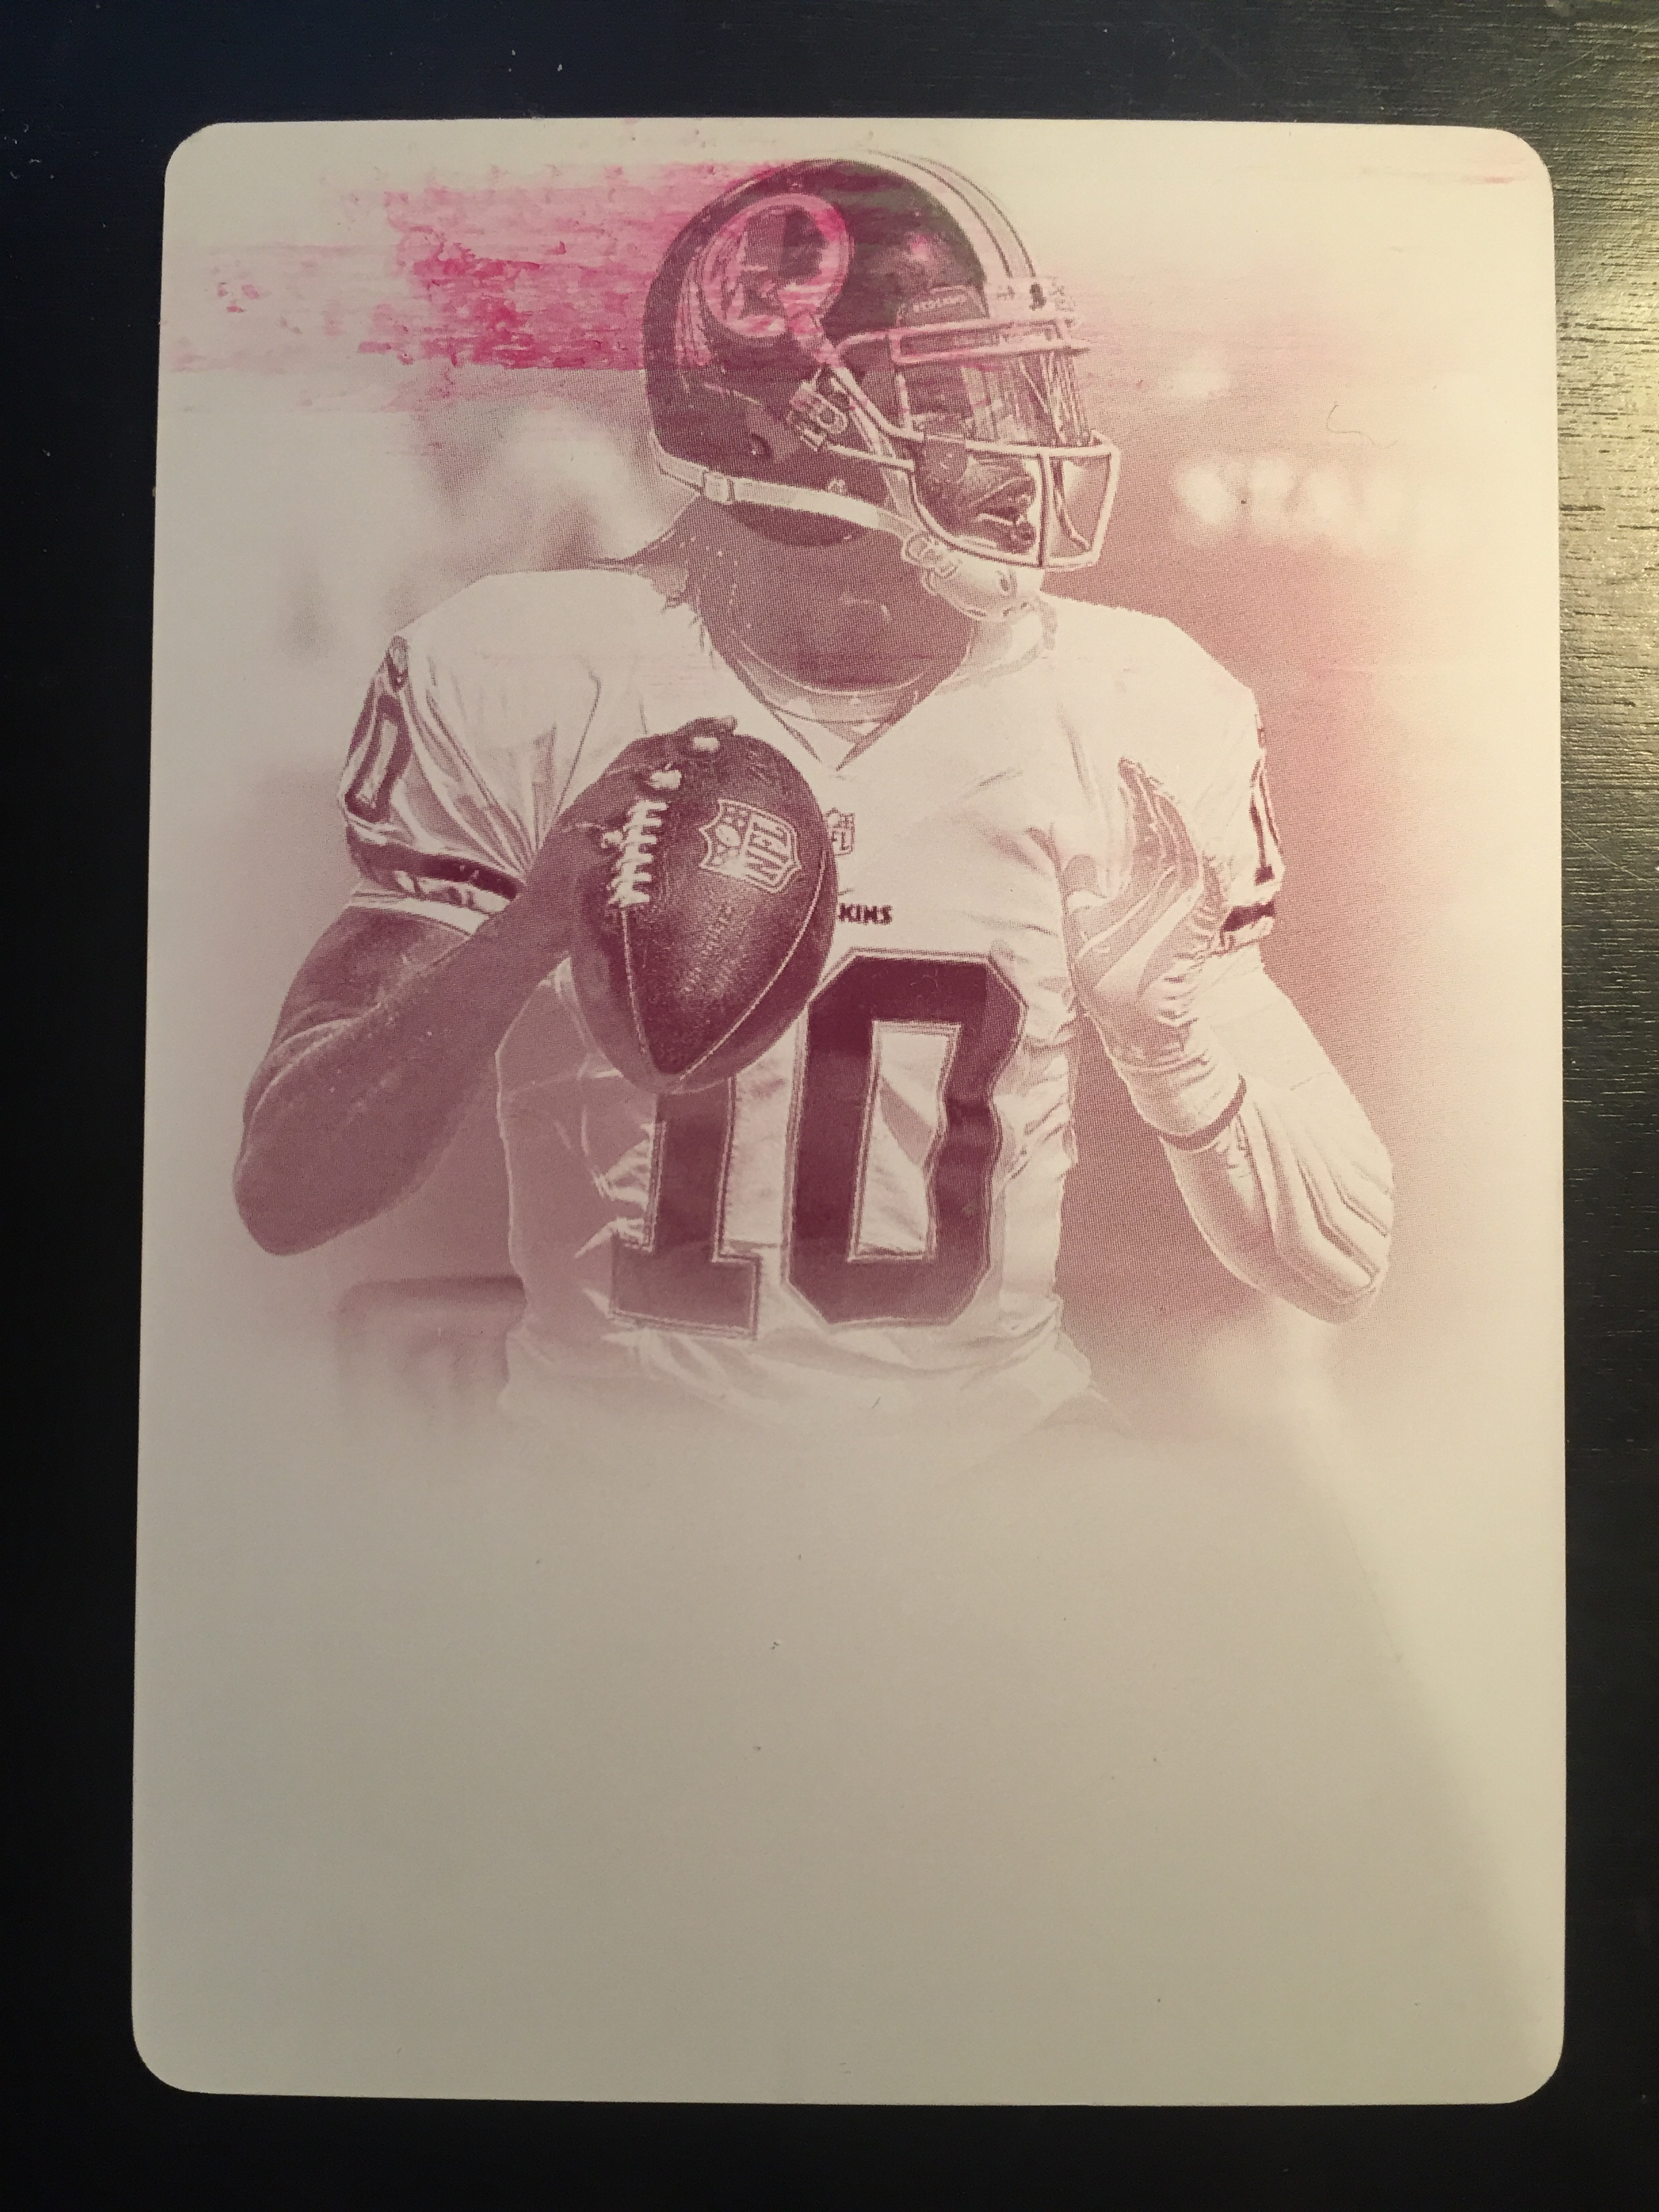 13-pnt-robert-griffin-iii-printing-plate-11-black-front-2